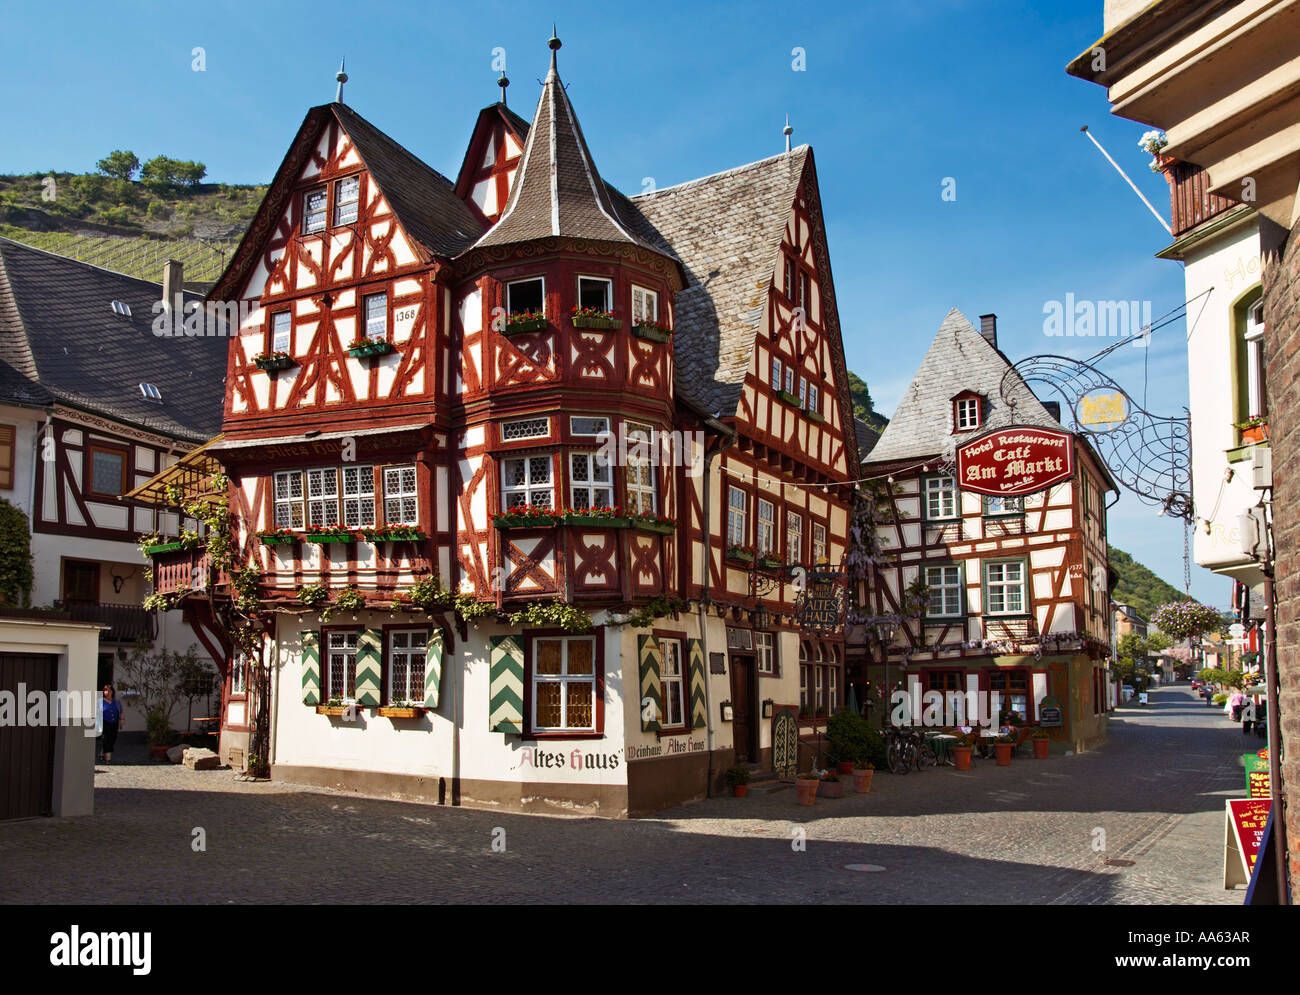 Famous old red house in Bacharach, Germany - the Altes Haus, Rhineland, Rhine Valley Stock Photo